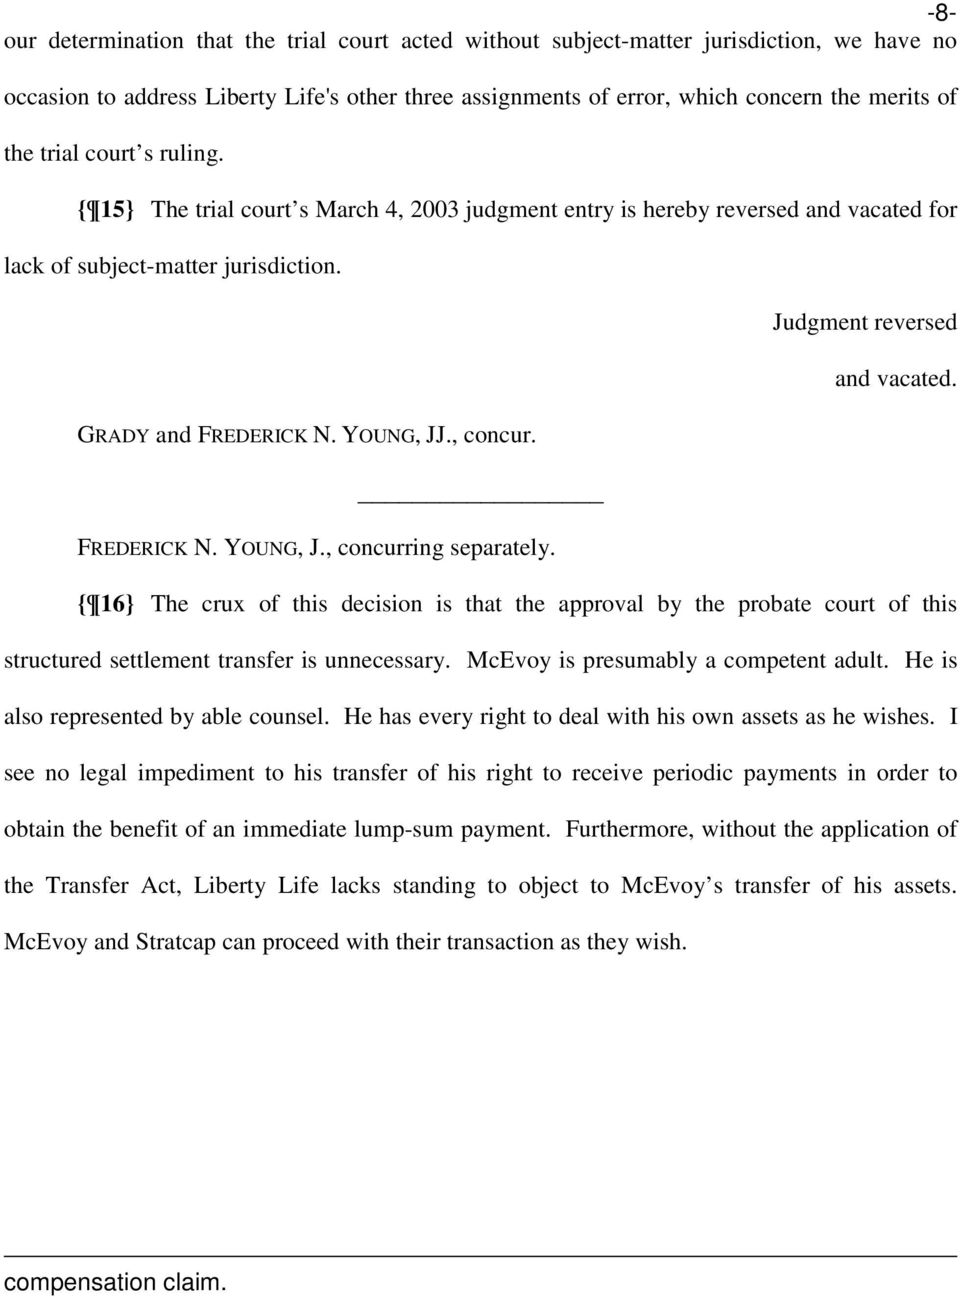 FREDERICK N. YOUNG, J., concurring separately. Judgment reversed and vacated.